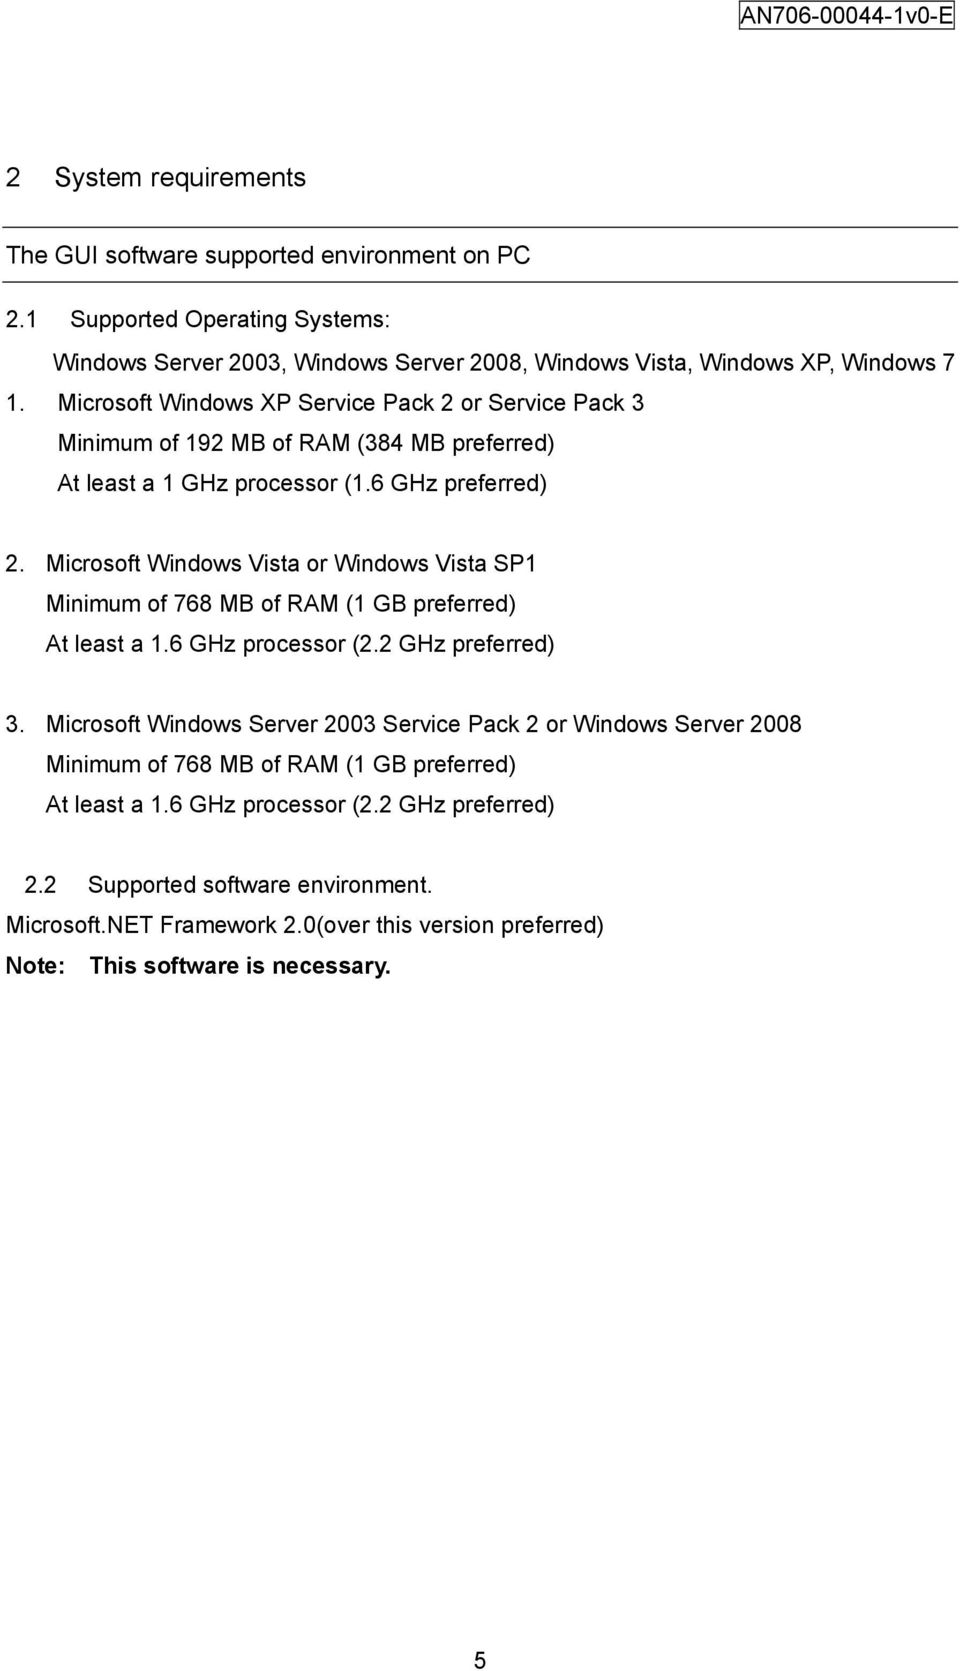 Microsoft Windows Vista or Windows Vista SP1 Minimum of 768 MB of RAM (1 GB preferred) At least a 1.6 GHz processor (2.2 GHz preferred) 3.